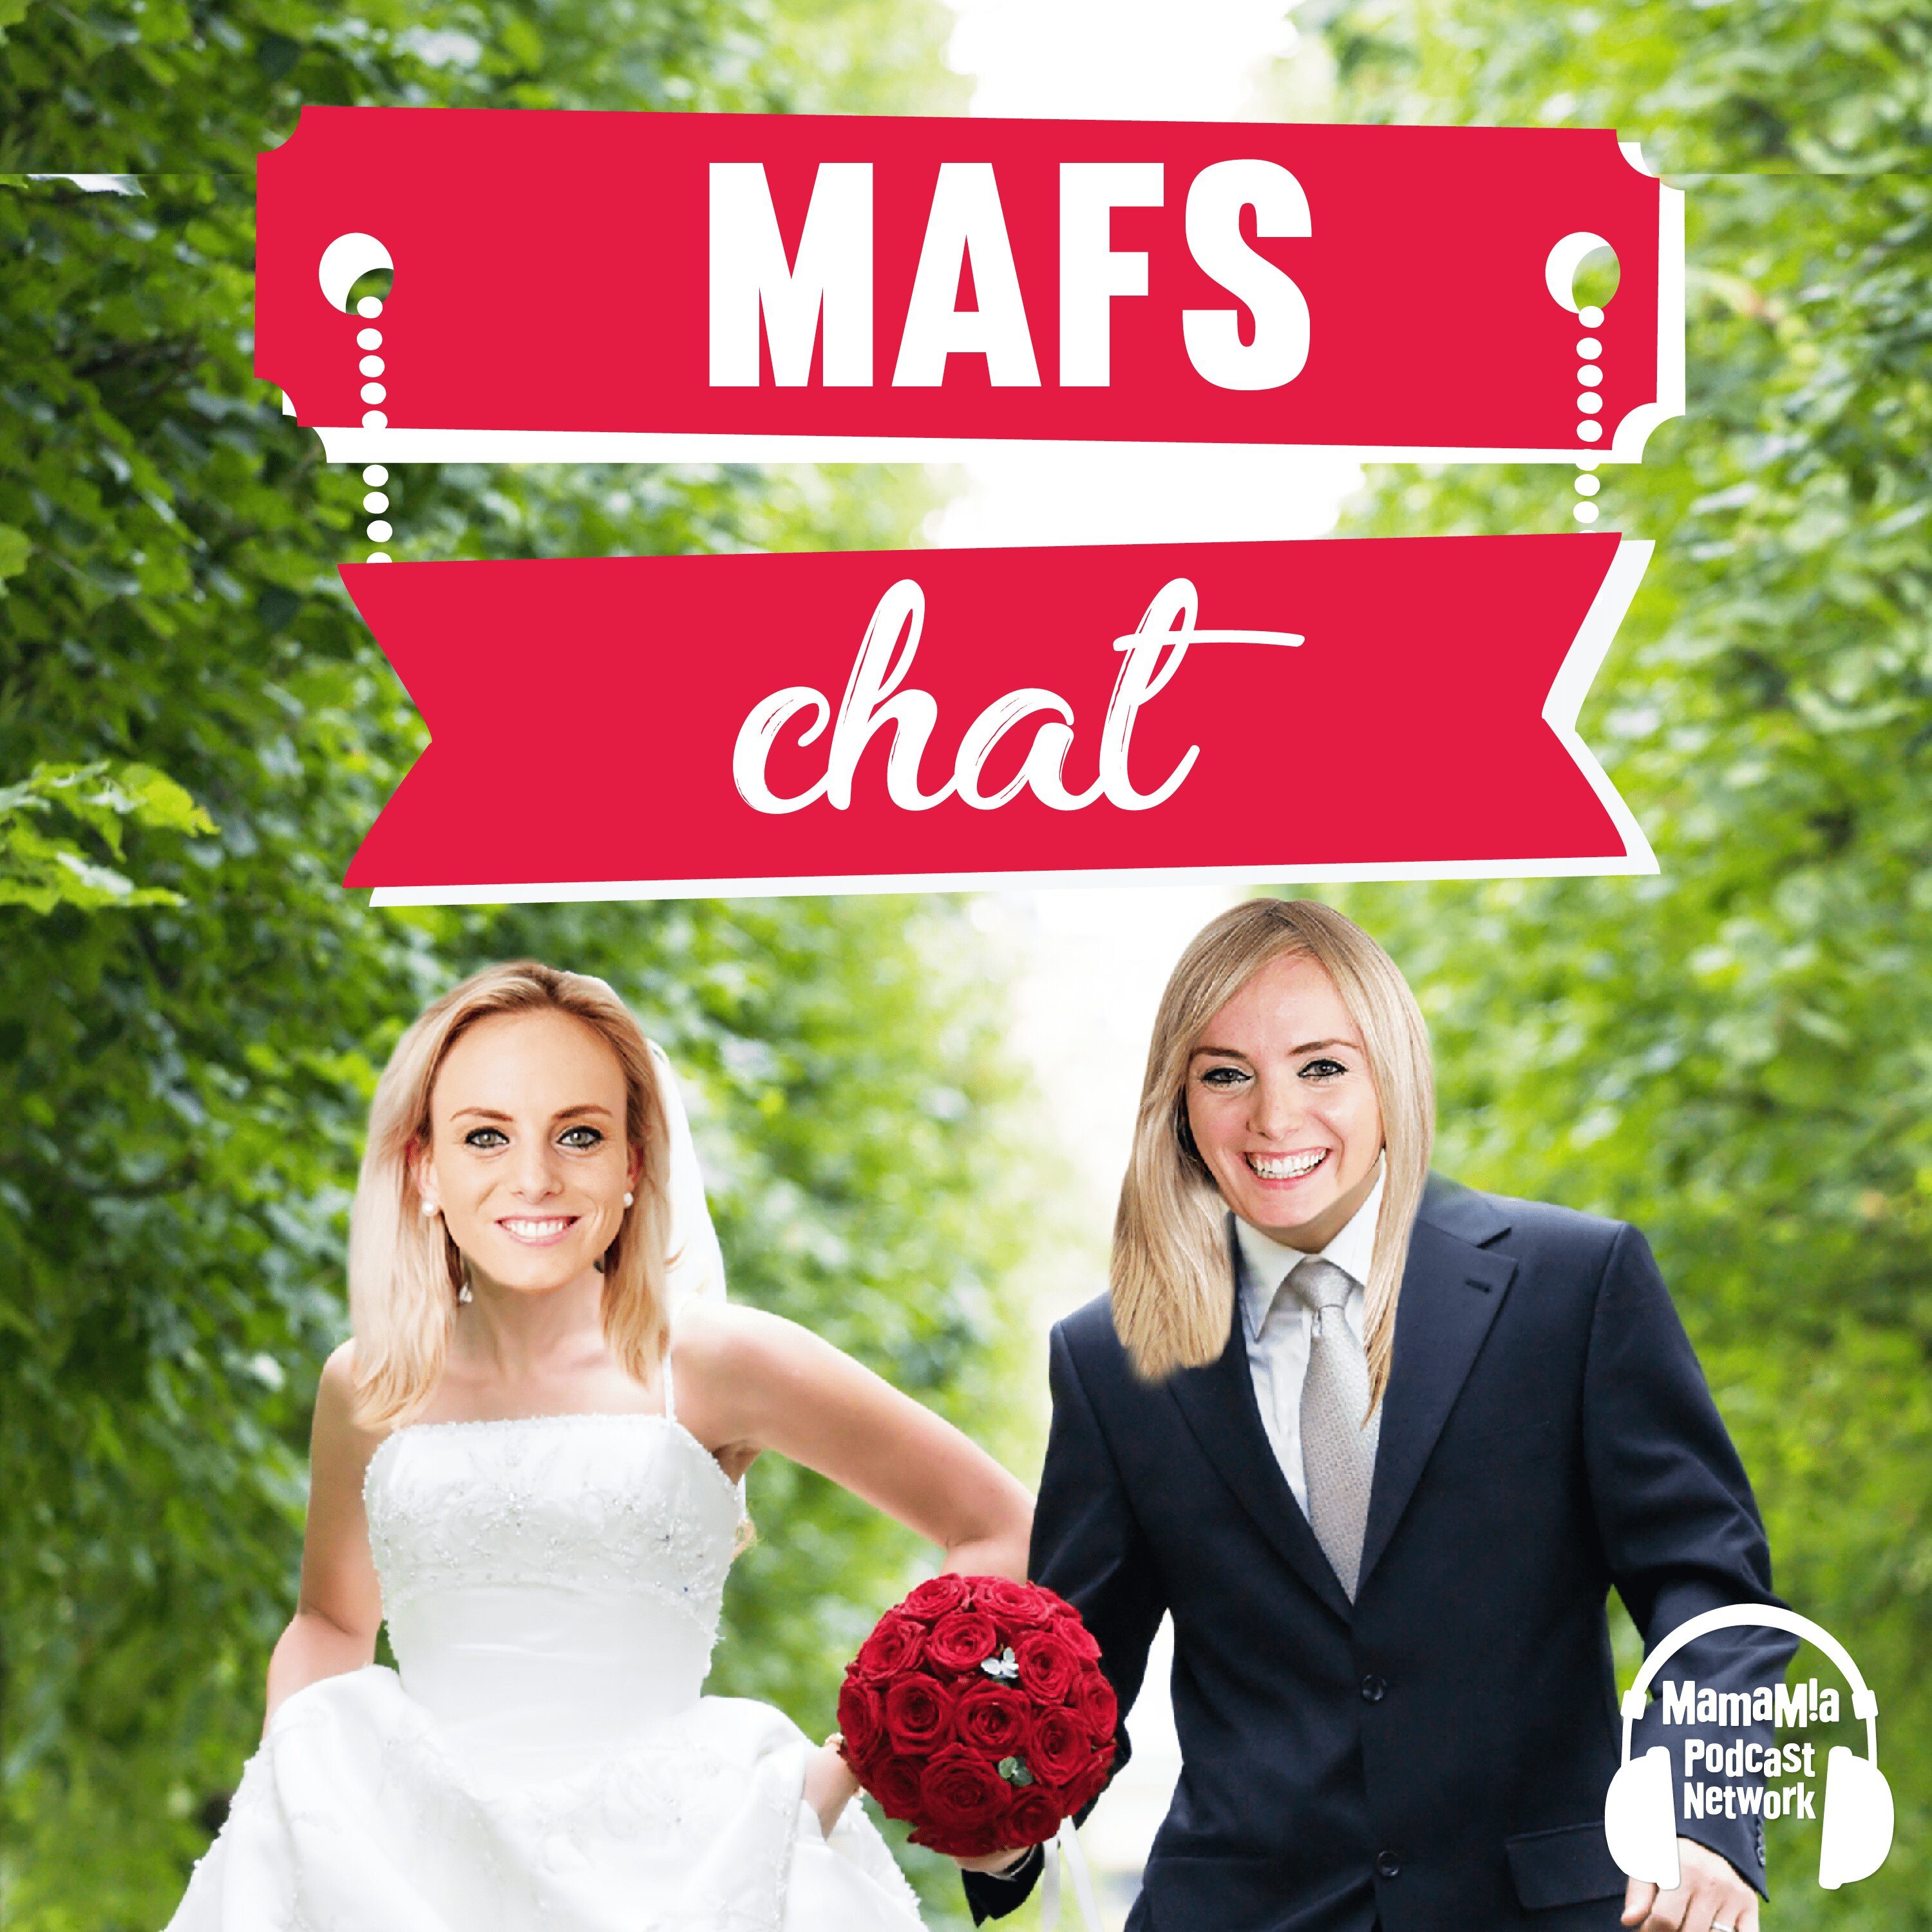 MAFS Chat: Jessika what the HELL